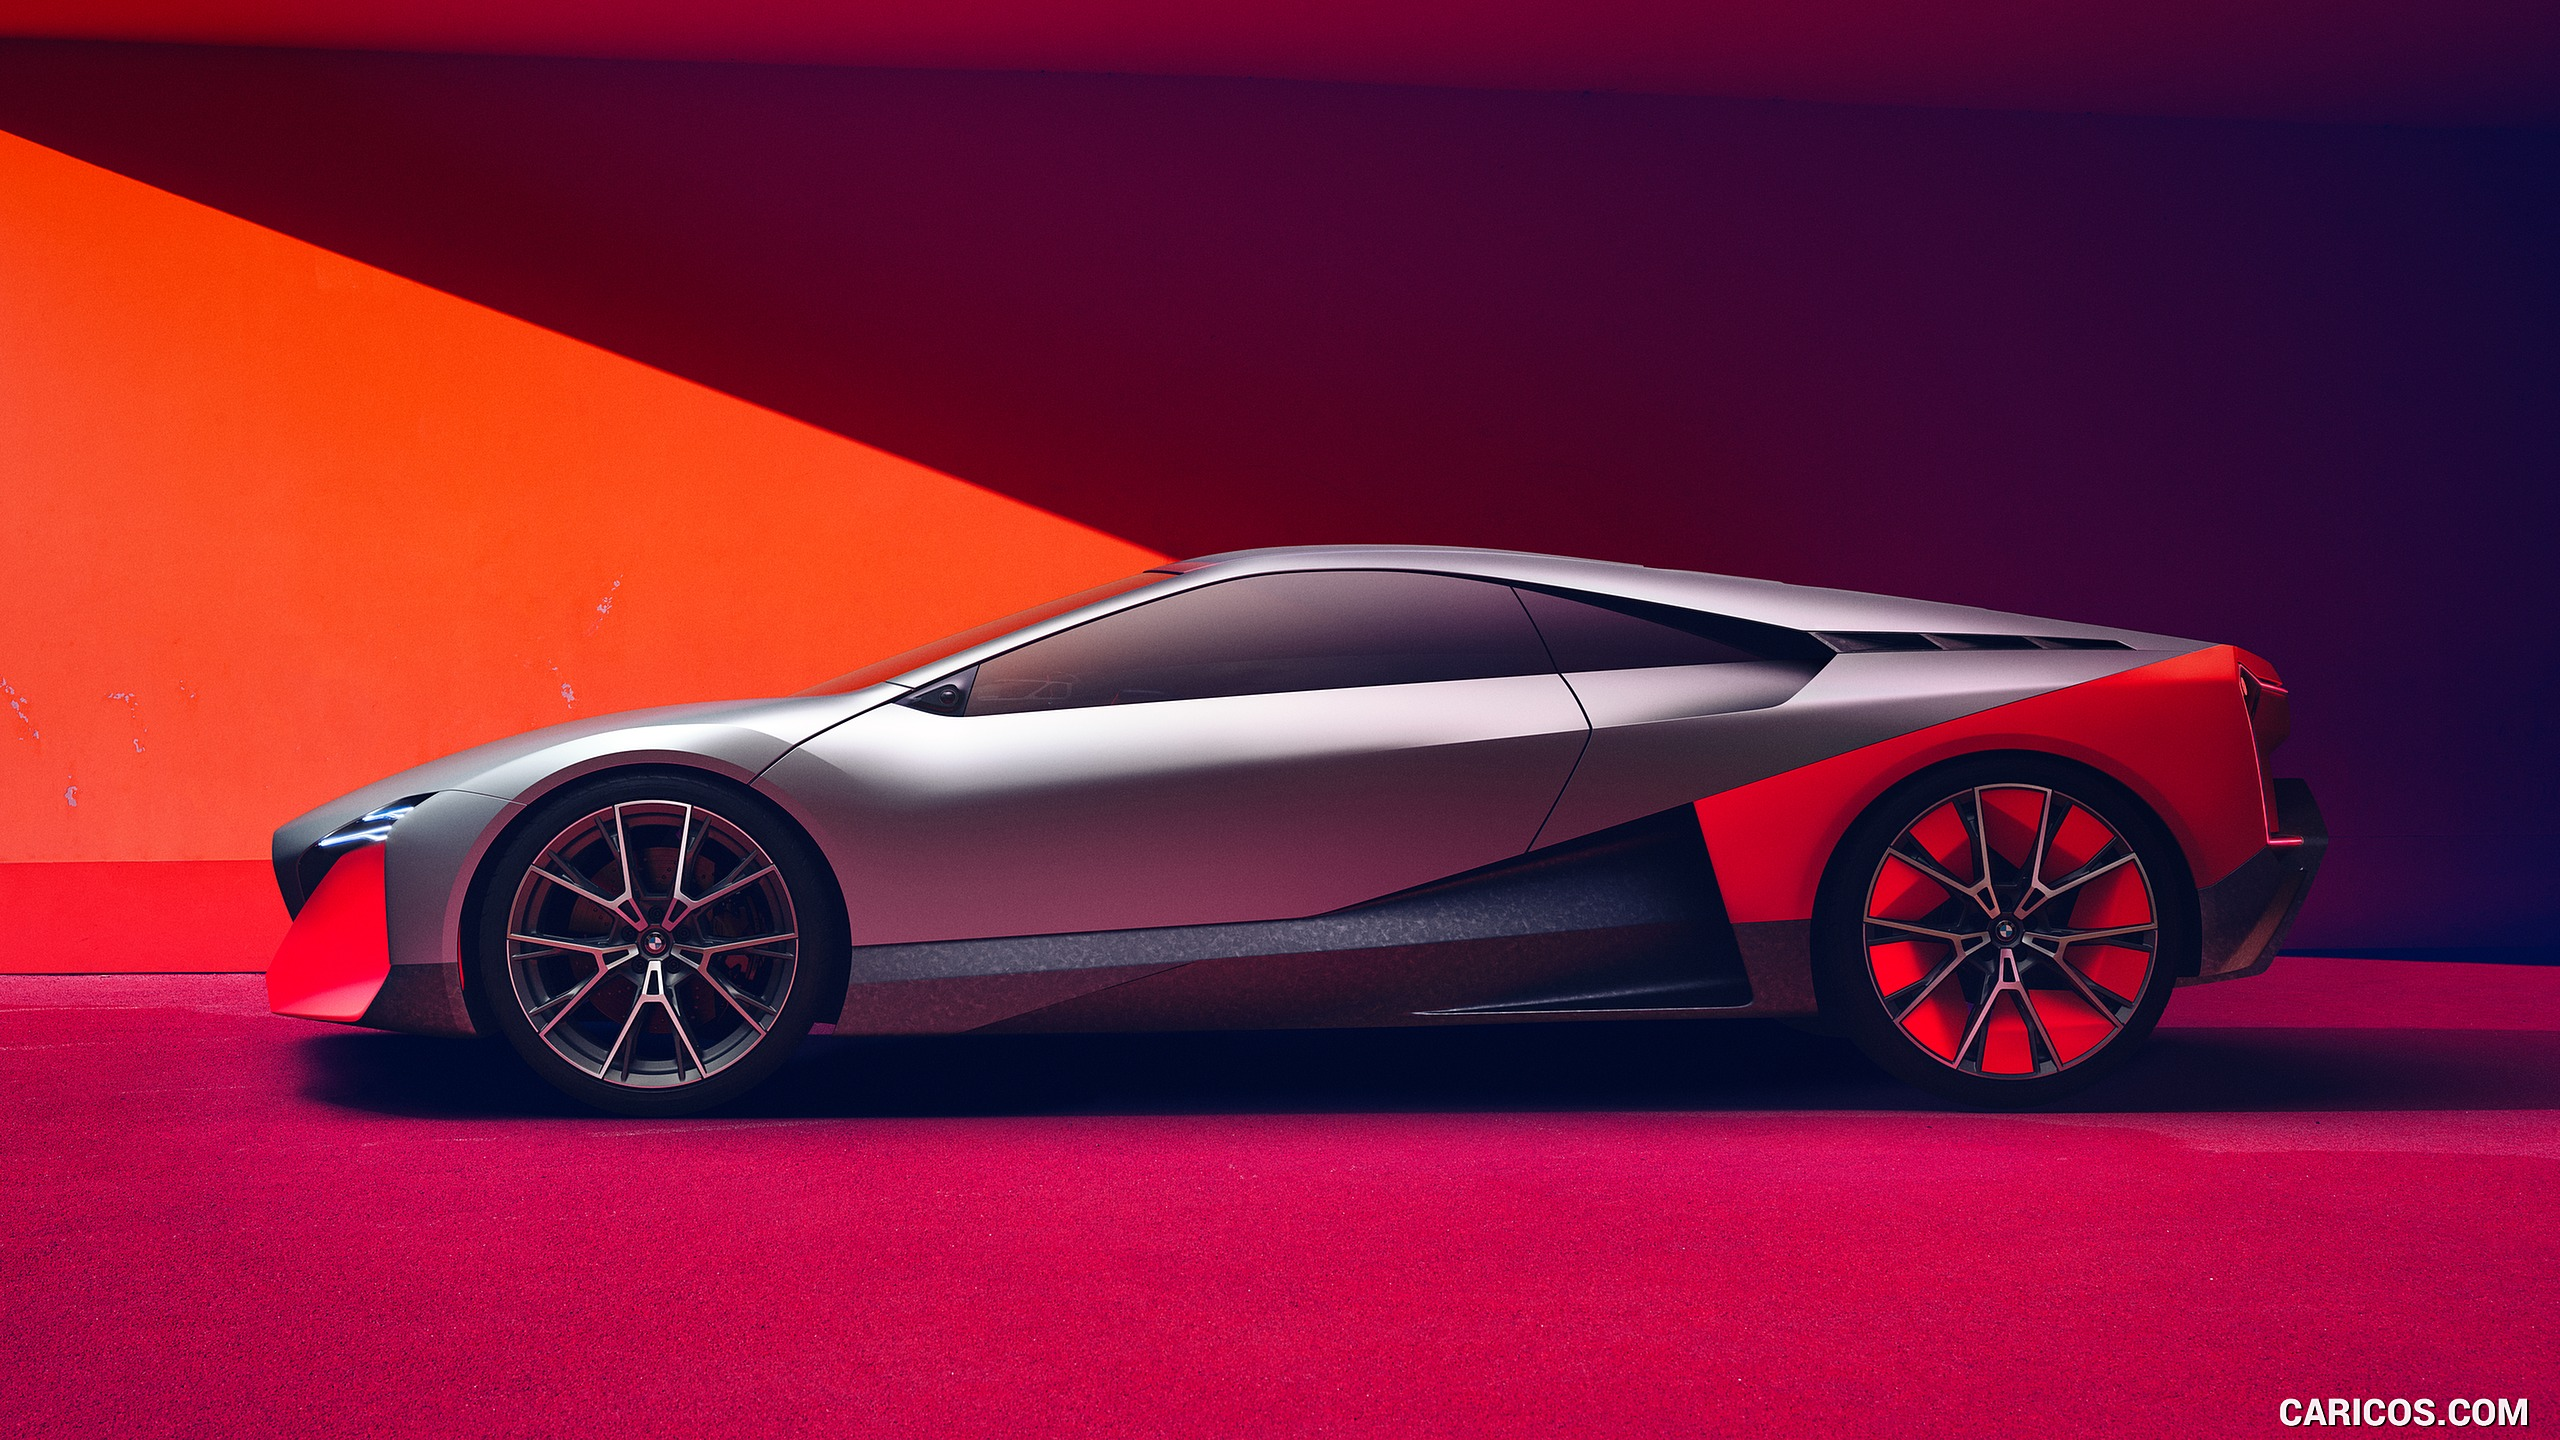 2019 BMW Vision M Next   Side HD Wallpaper 8 2560x1440